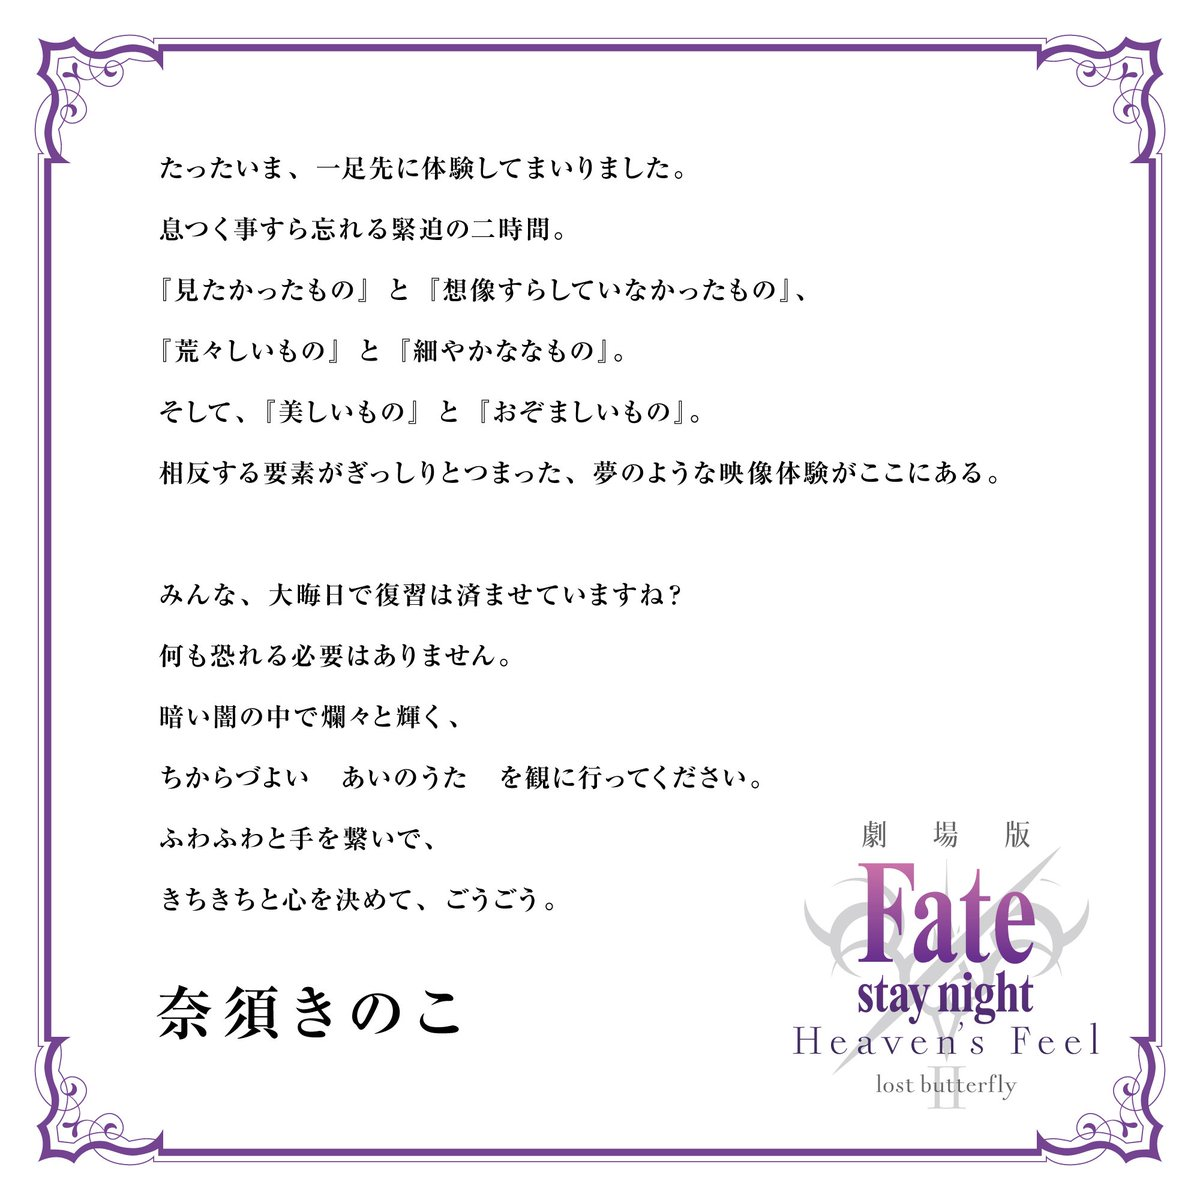 Fate/stay nightさんの投稿画像